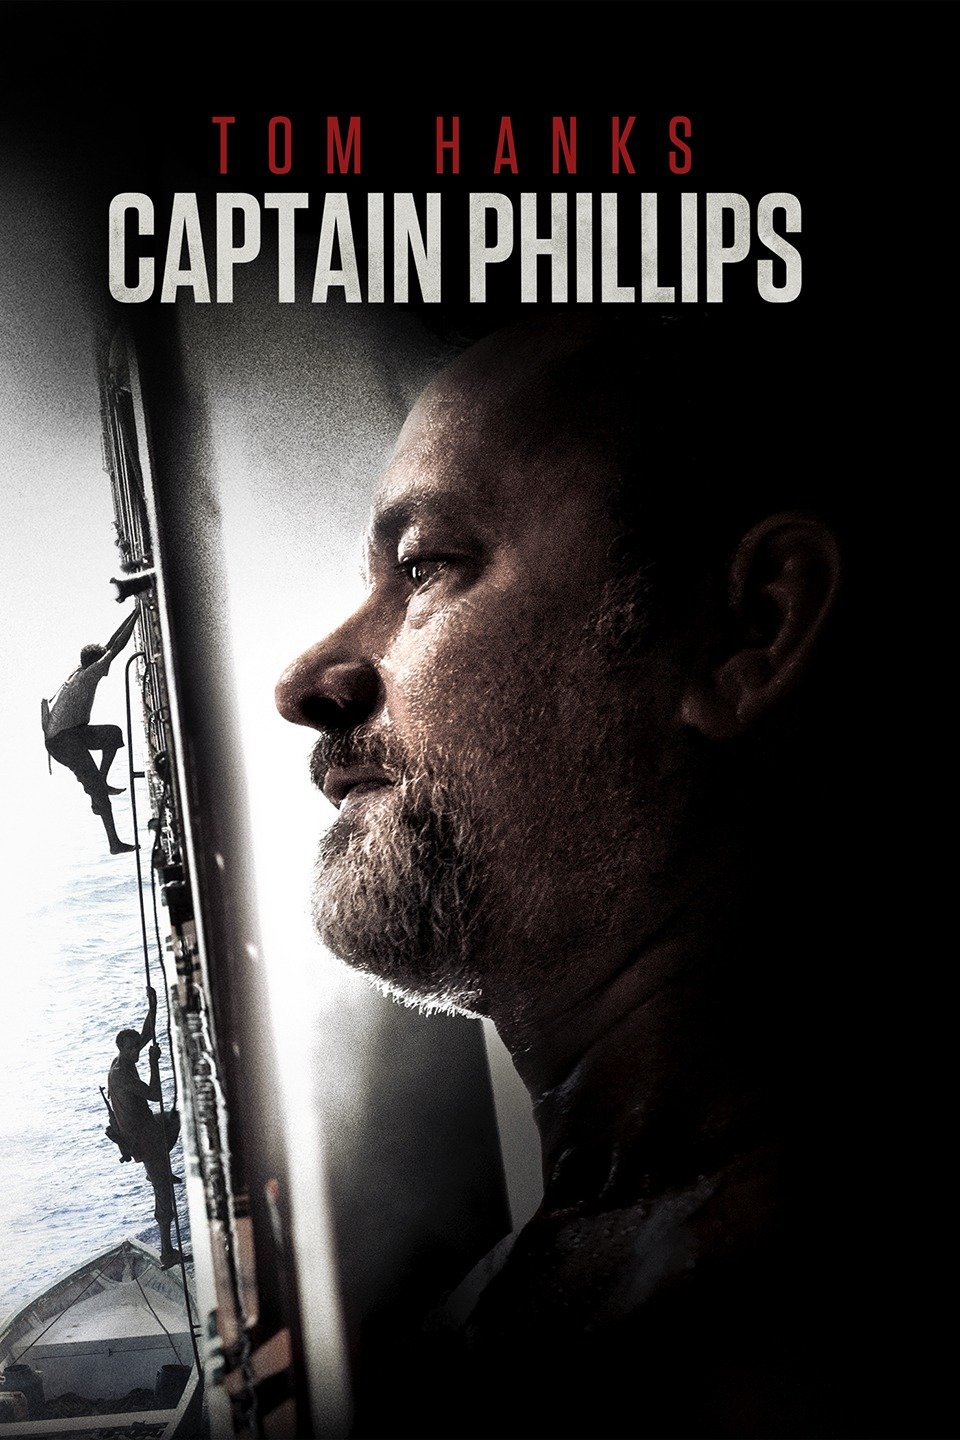 Bildresultat för Captain phillips film